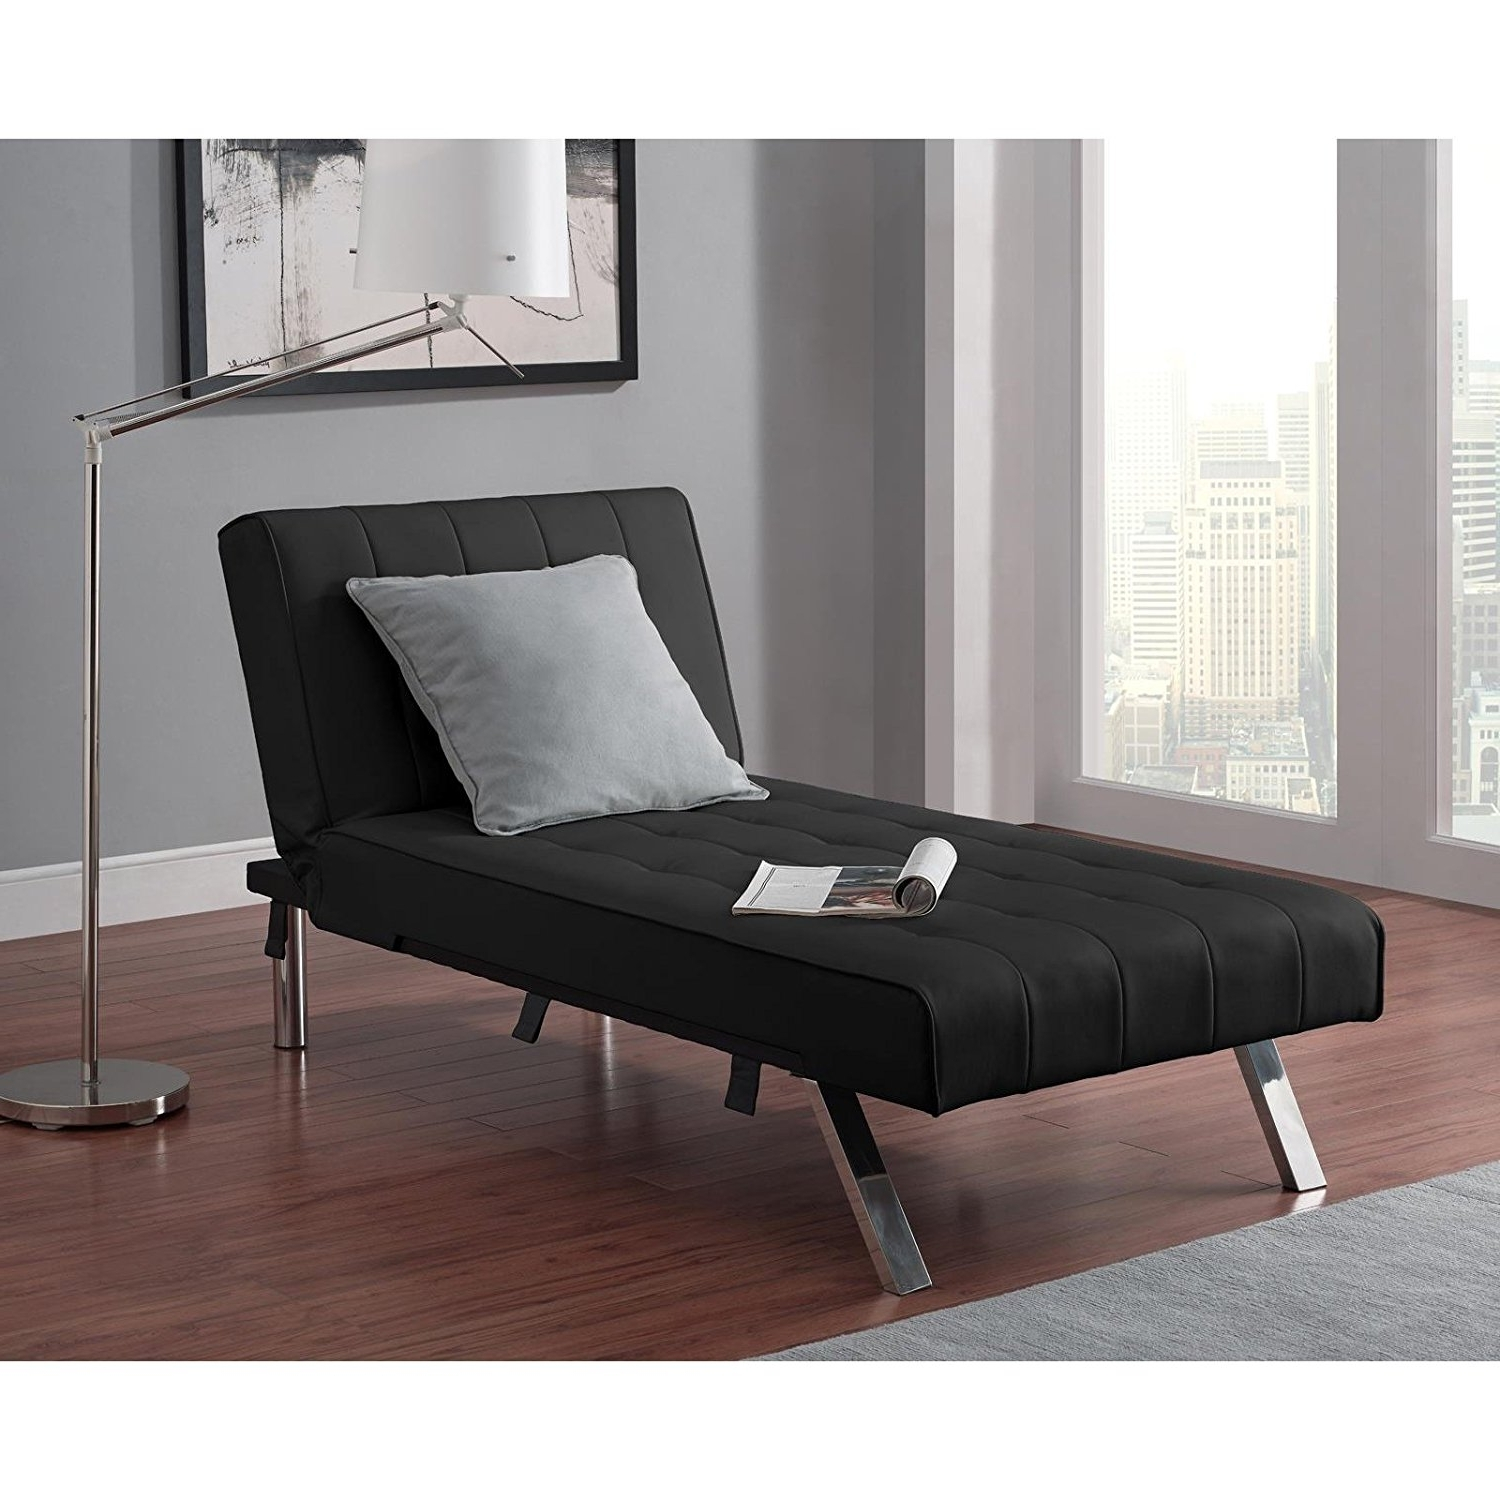 2017 Amazon: Emily Futon With Chaise Lounger Super Bonus Set Black With Regard To Futon Chaises (View 1 of 15)